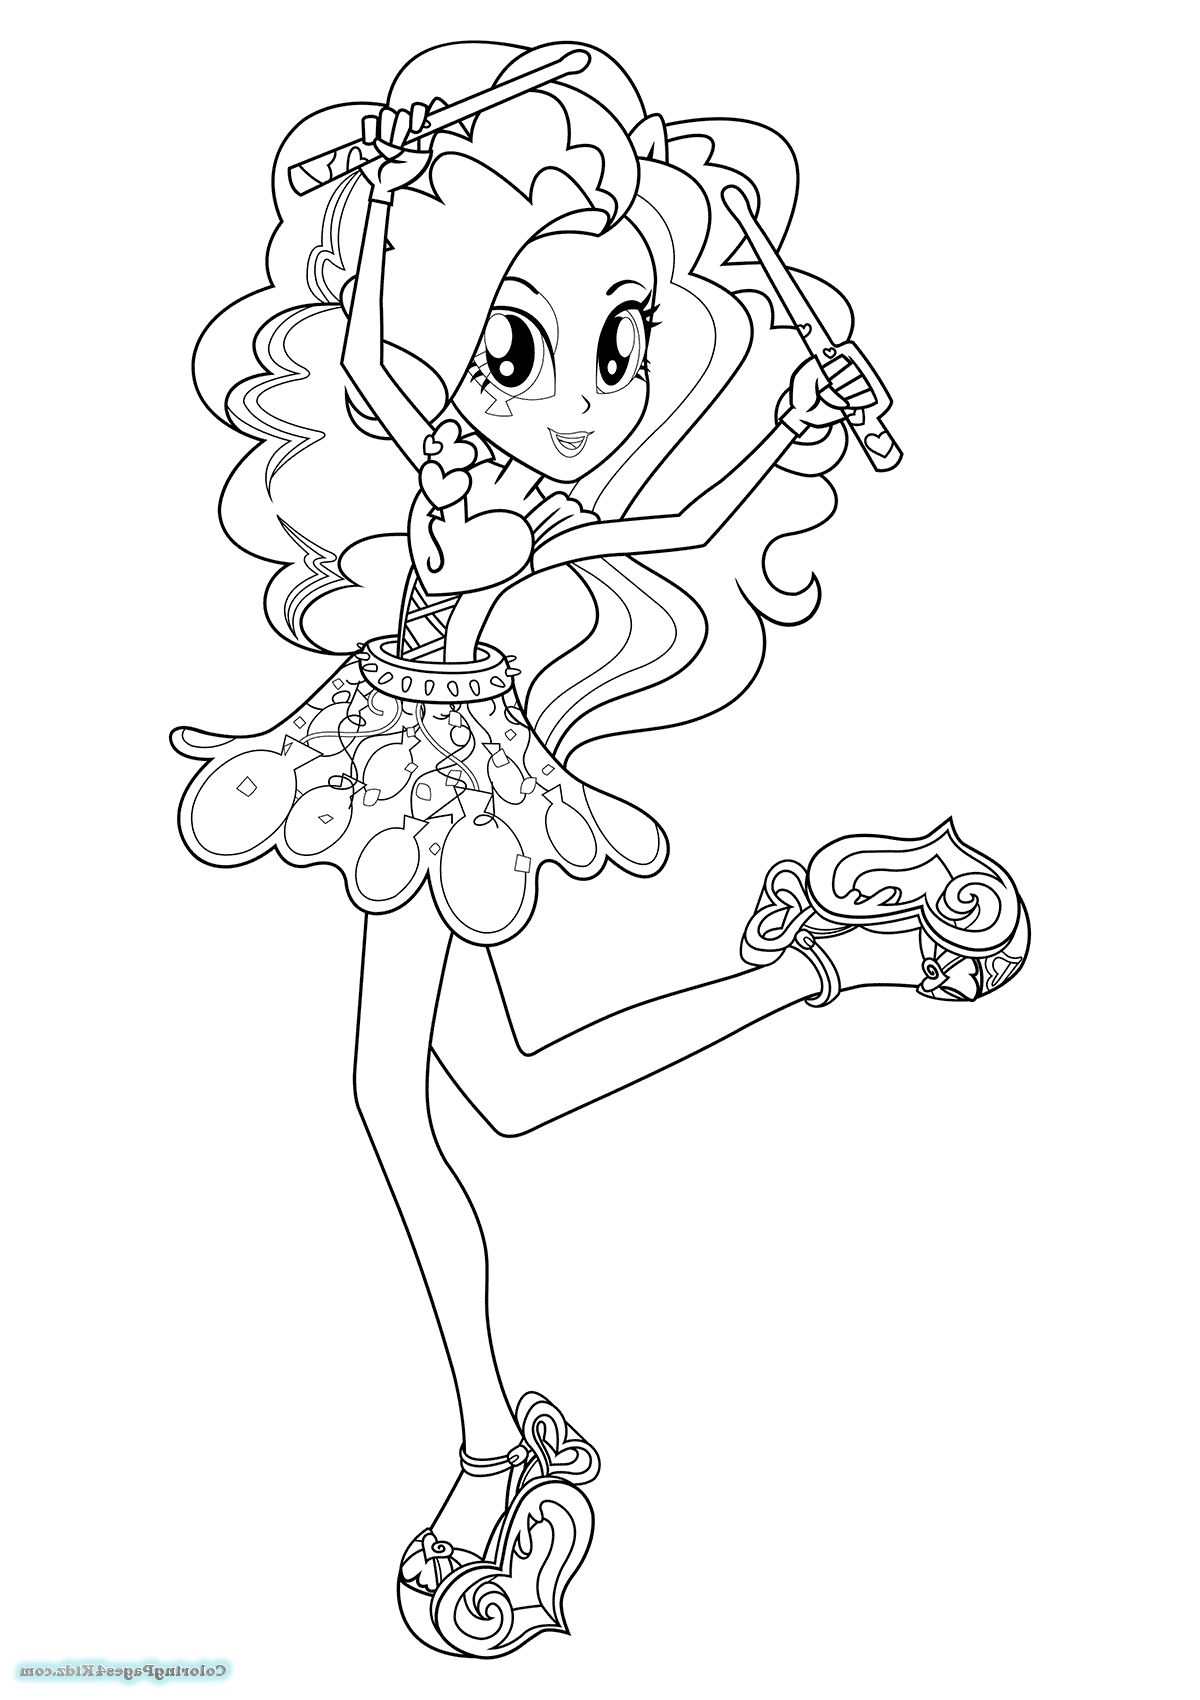 Equestria Girls Rainbow Rocks Coloring Pages Coloring Pages Dream Catcher Coloring Pages Pokemon Coloring Pages